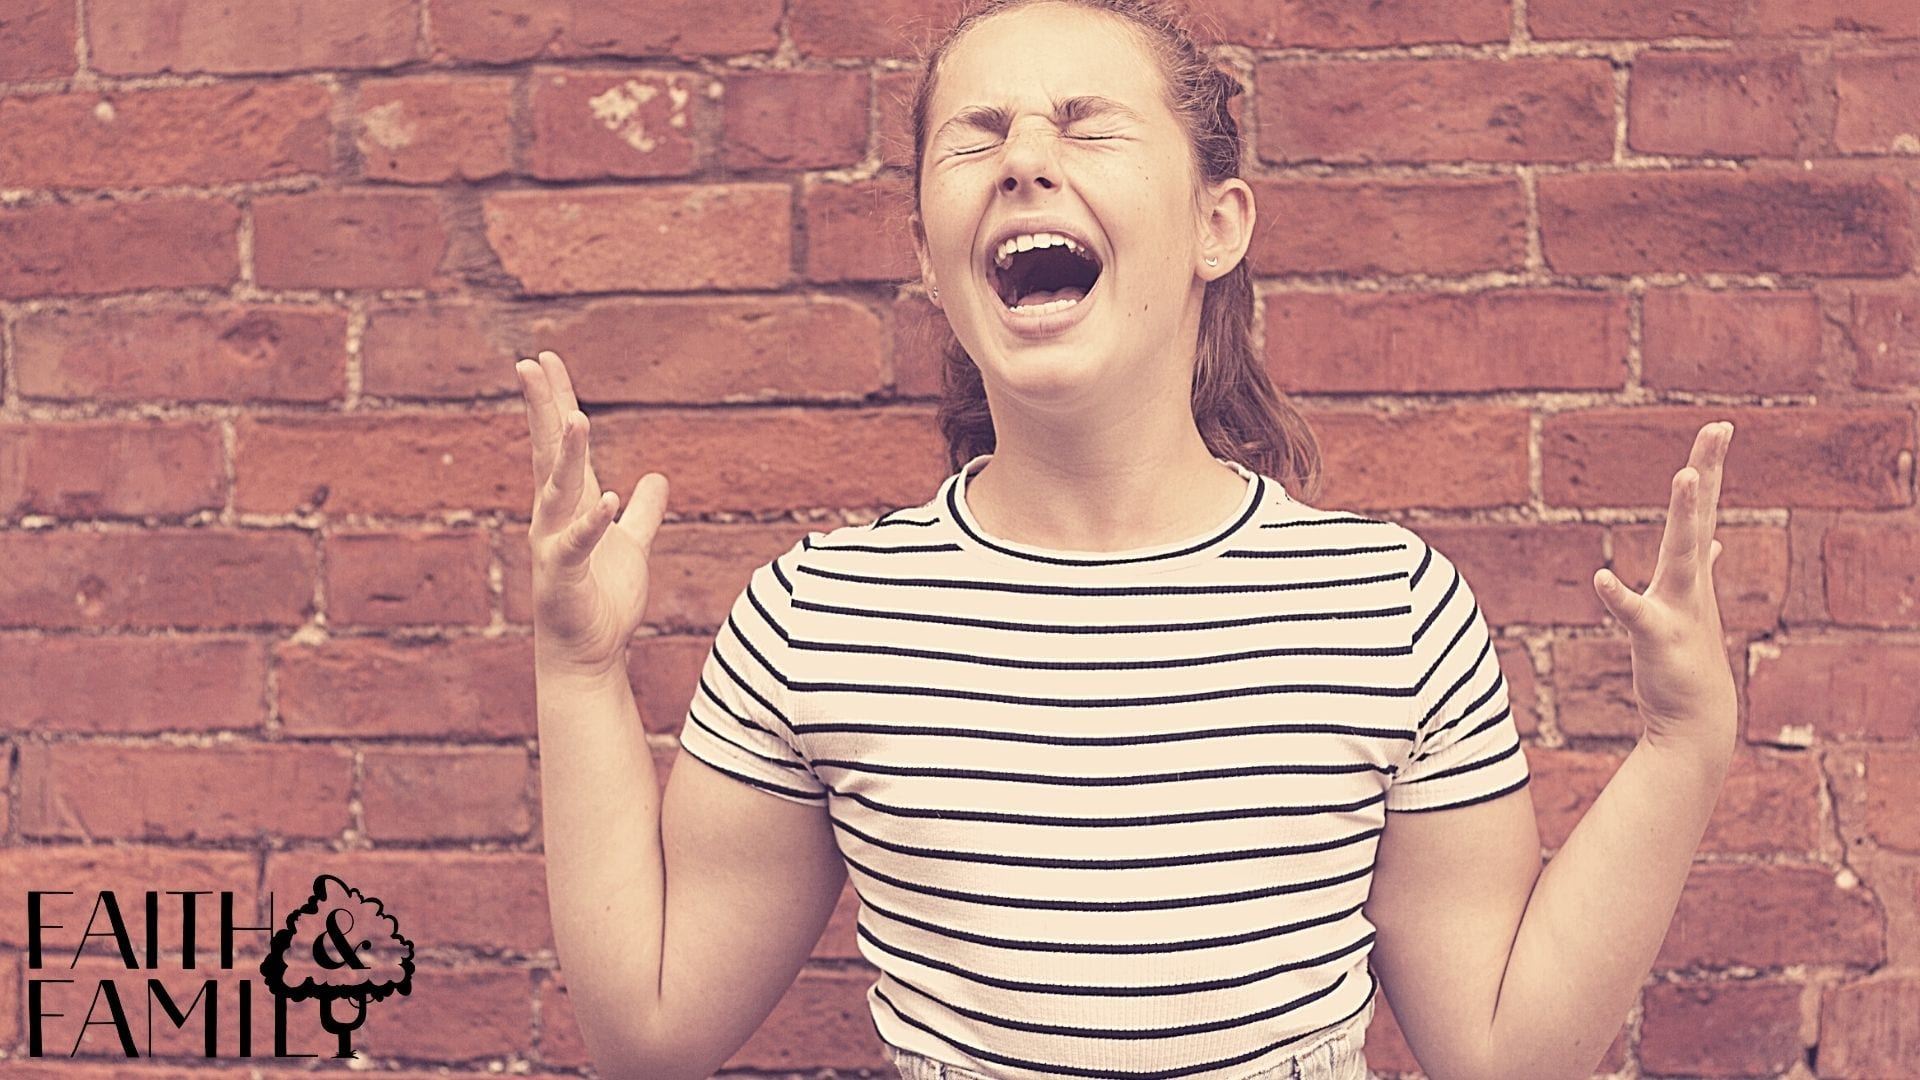 teenager with striped shirt screaming with her hands up